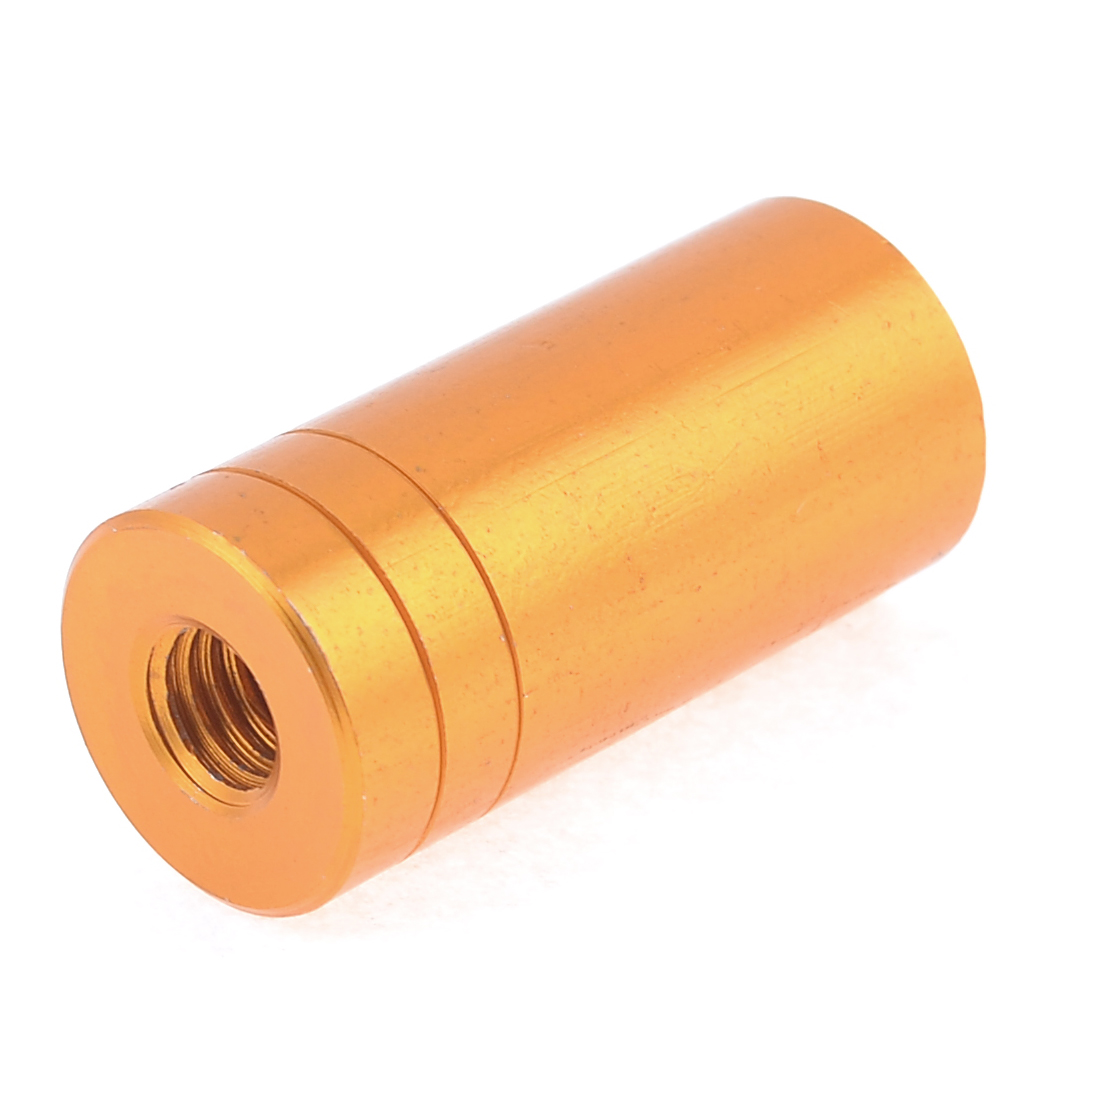 1.8cm x 3.8cm Copper Tone Aluminum Alloy Connector for Fishing Landing Net